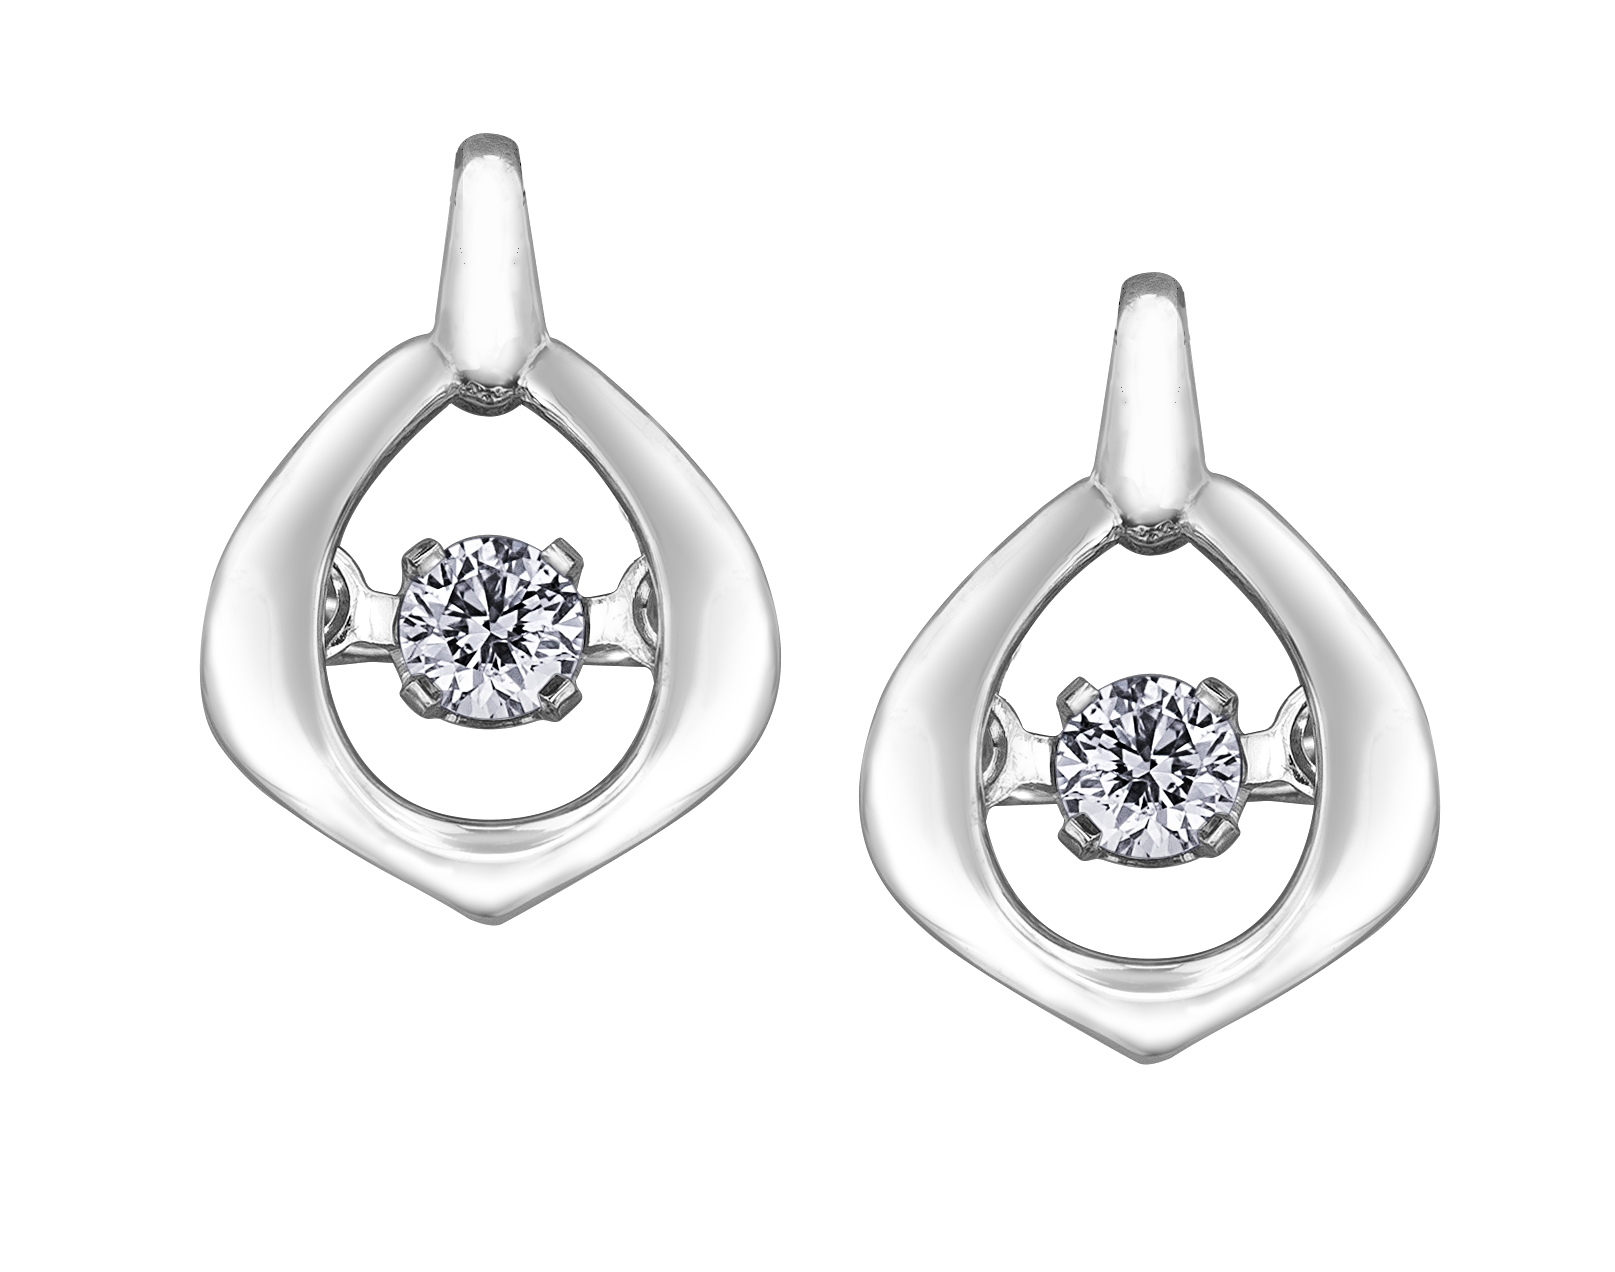 Boucles d'oreilles à tiges fixes - Or blanc 10K & Diamants Canadiens totalisant 0.04 Carat